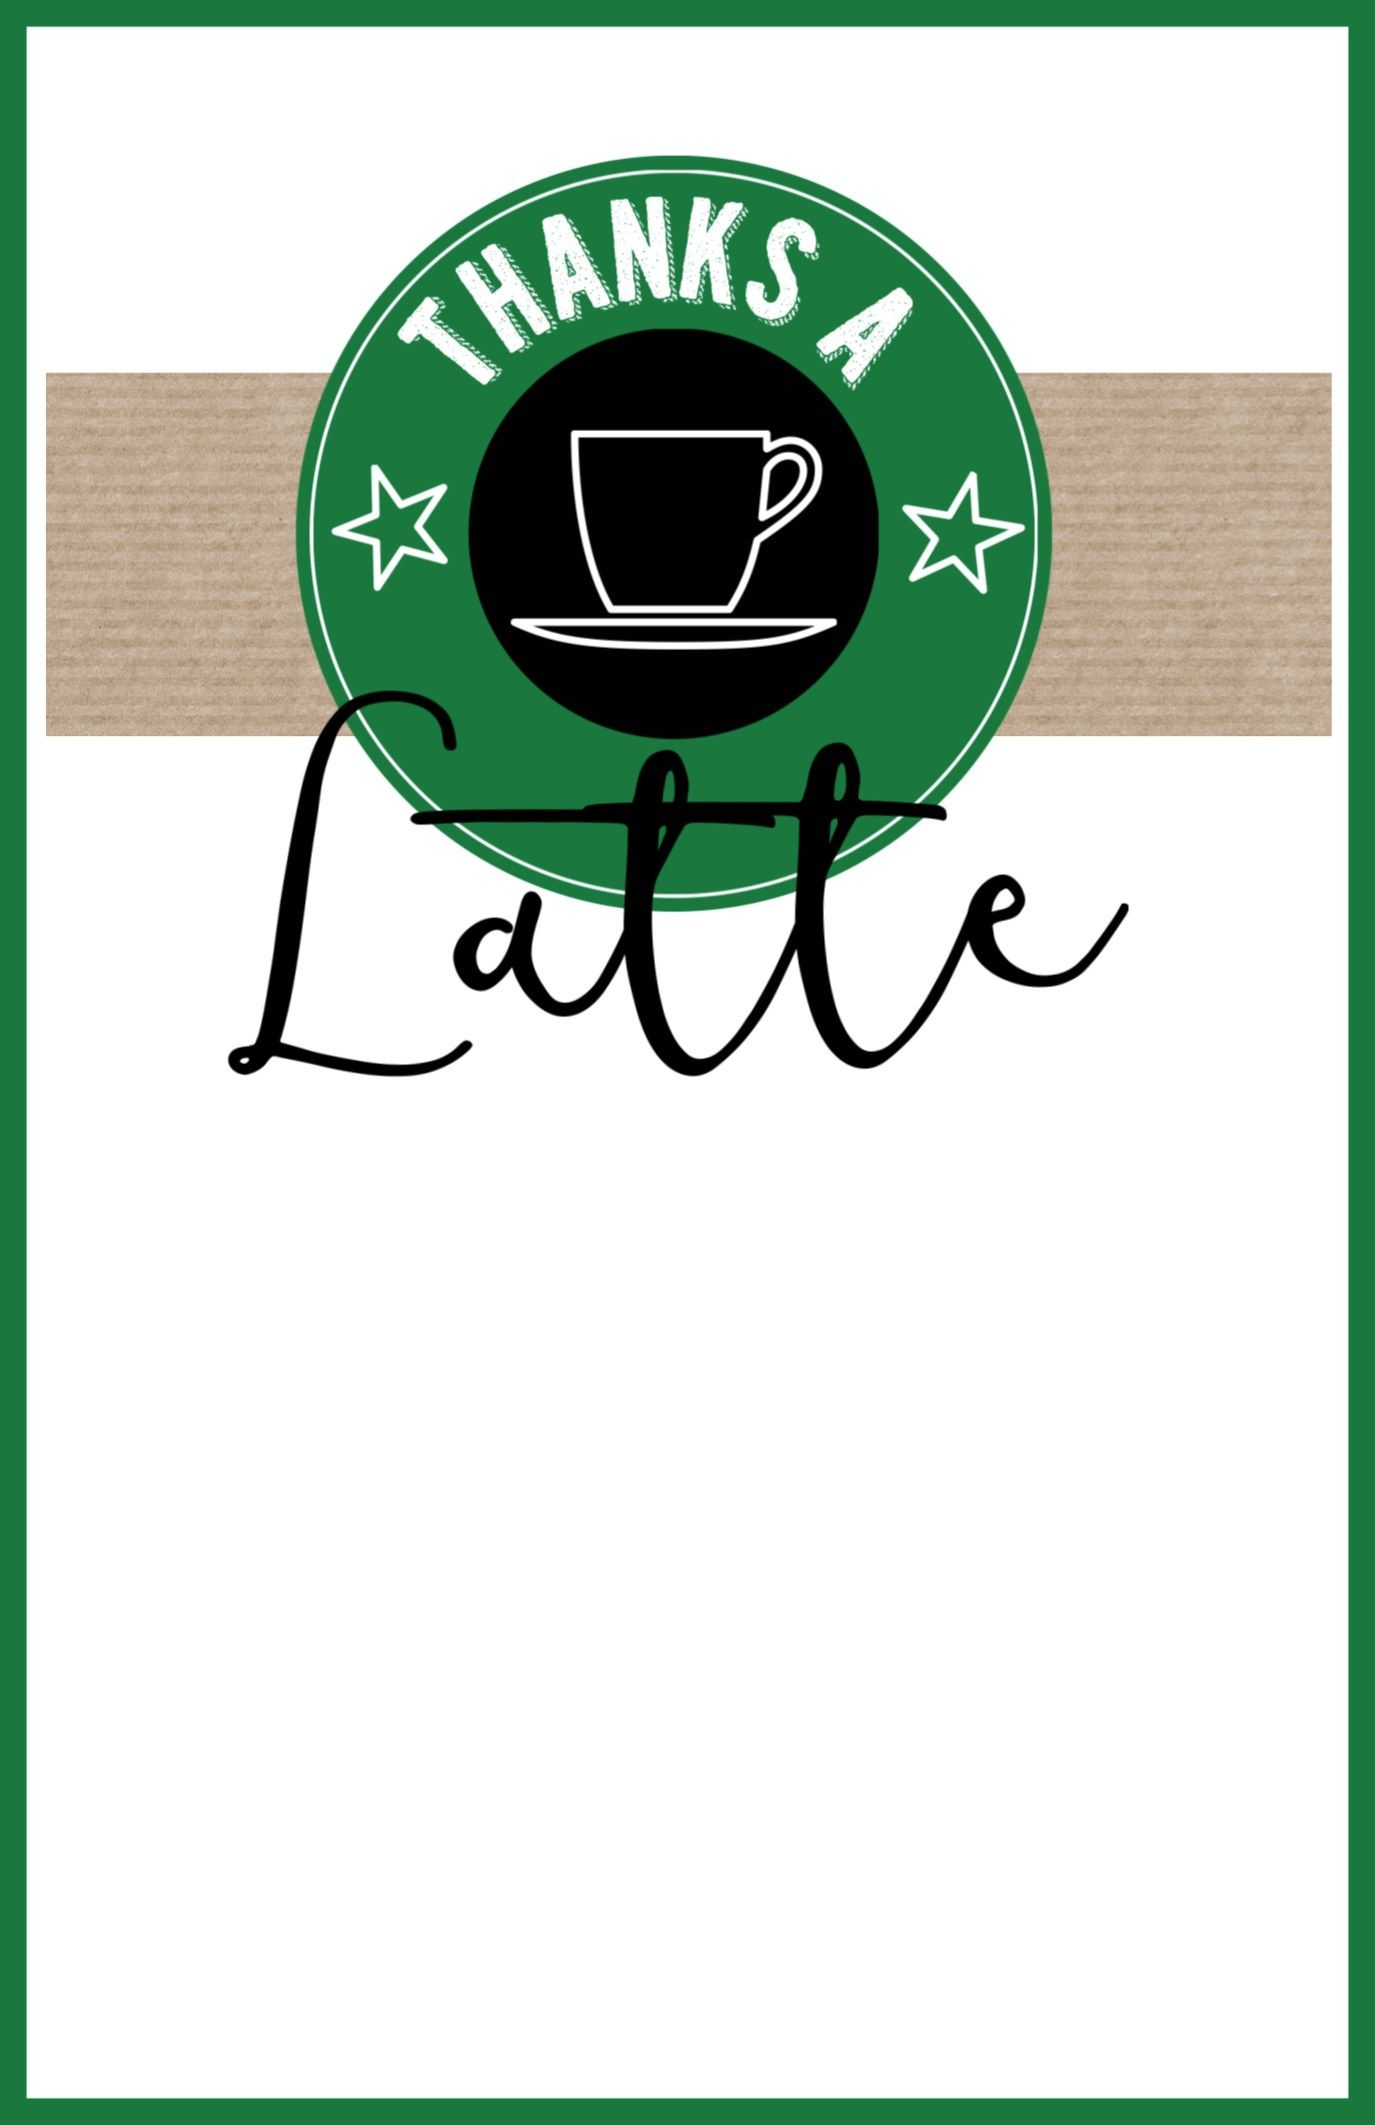 photo regarding Starbucks Printable Application named Starbucks Trainer Thank By yourself Printable Present notion Instructor